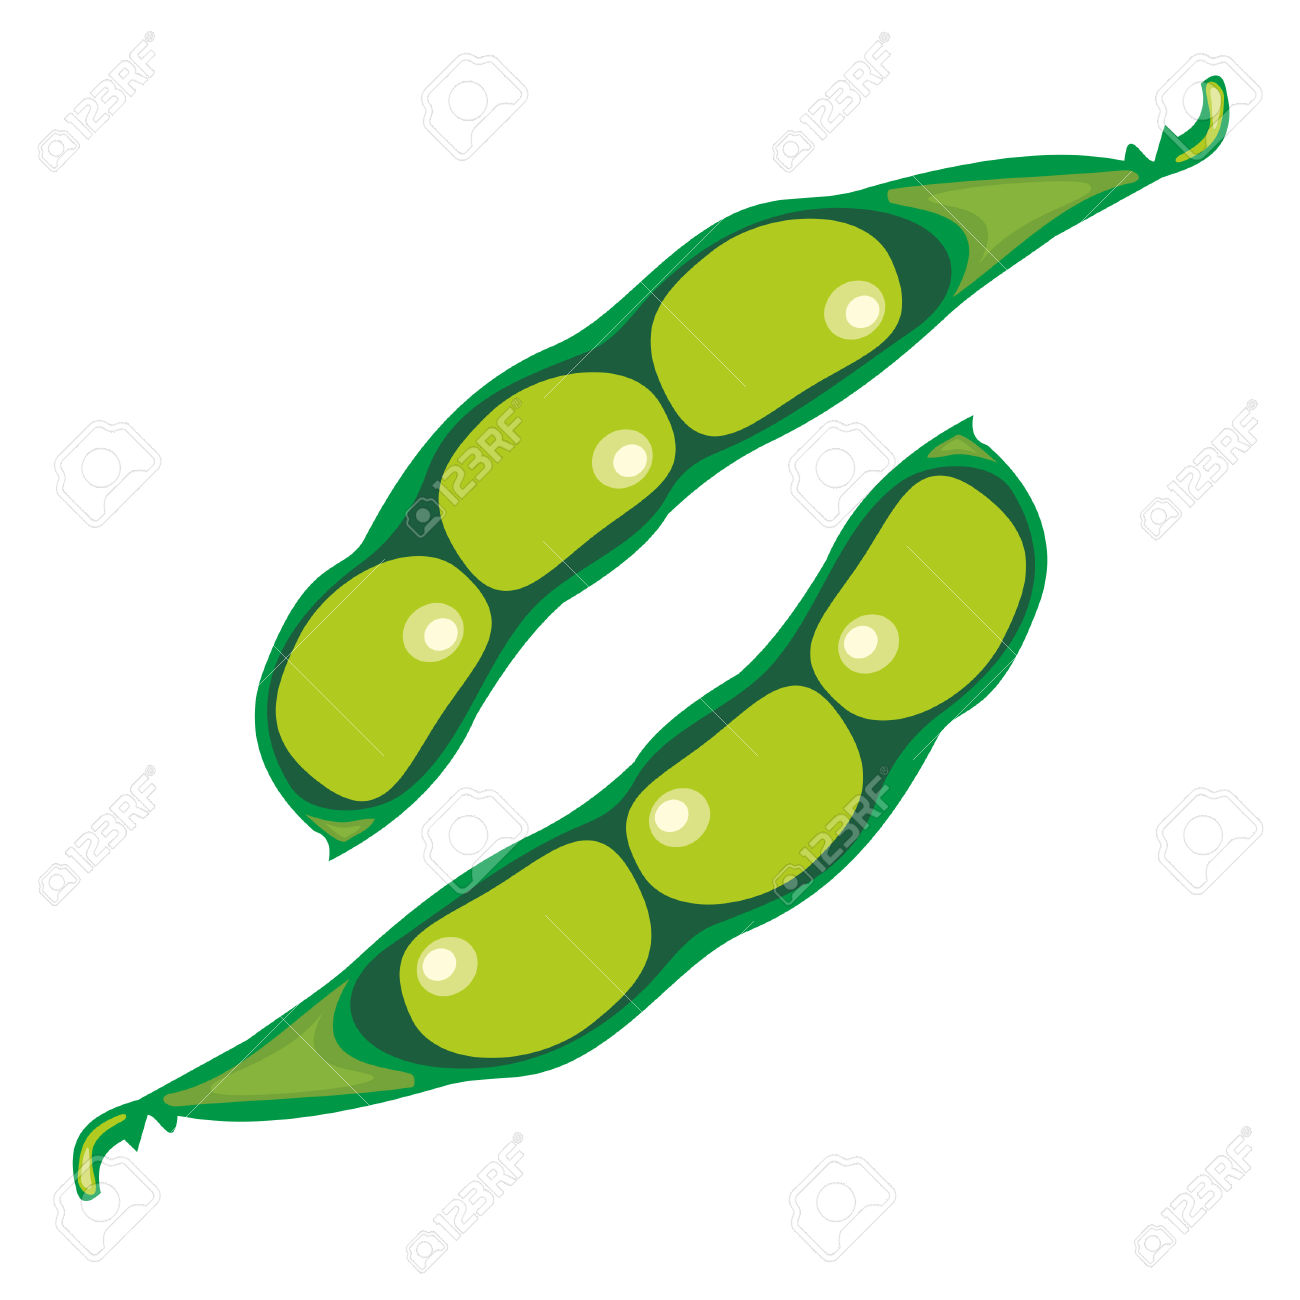 Collection of Soybean clipart.